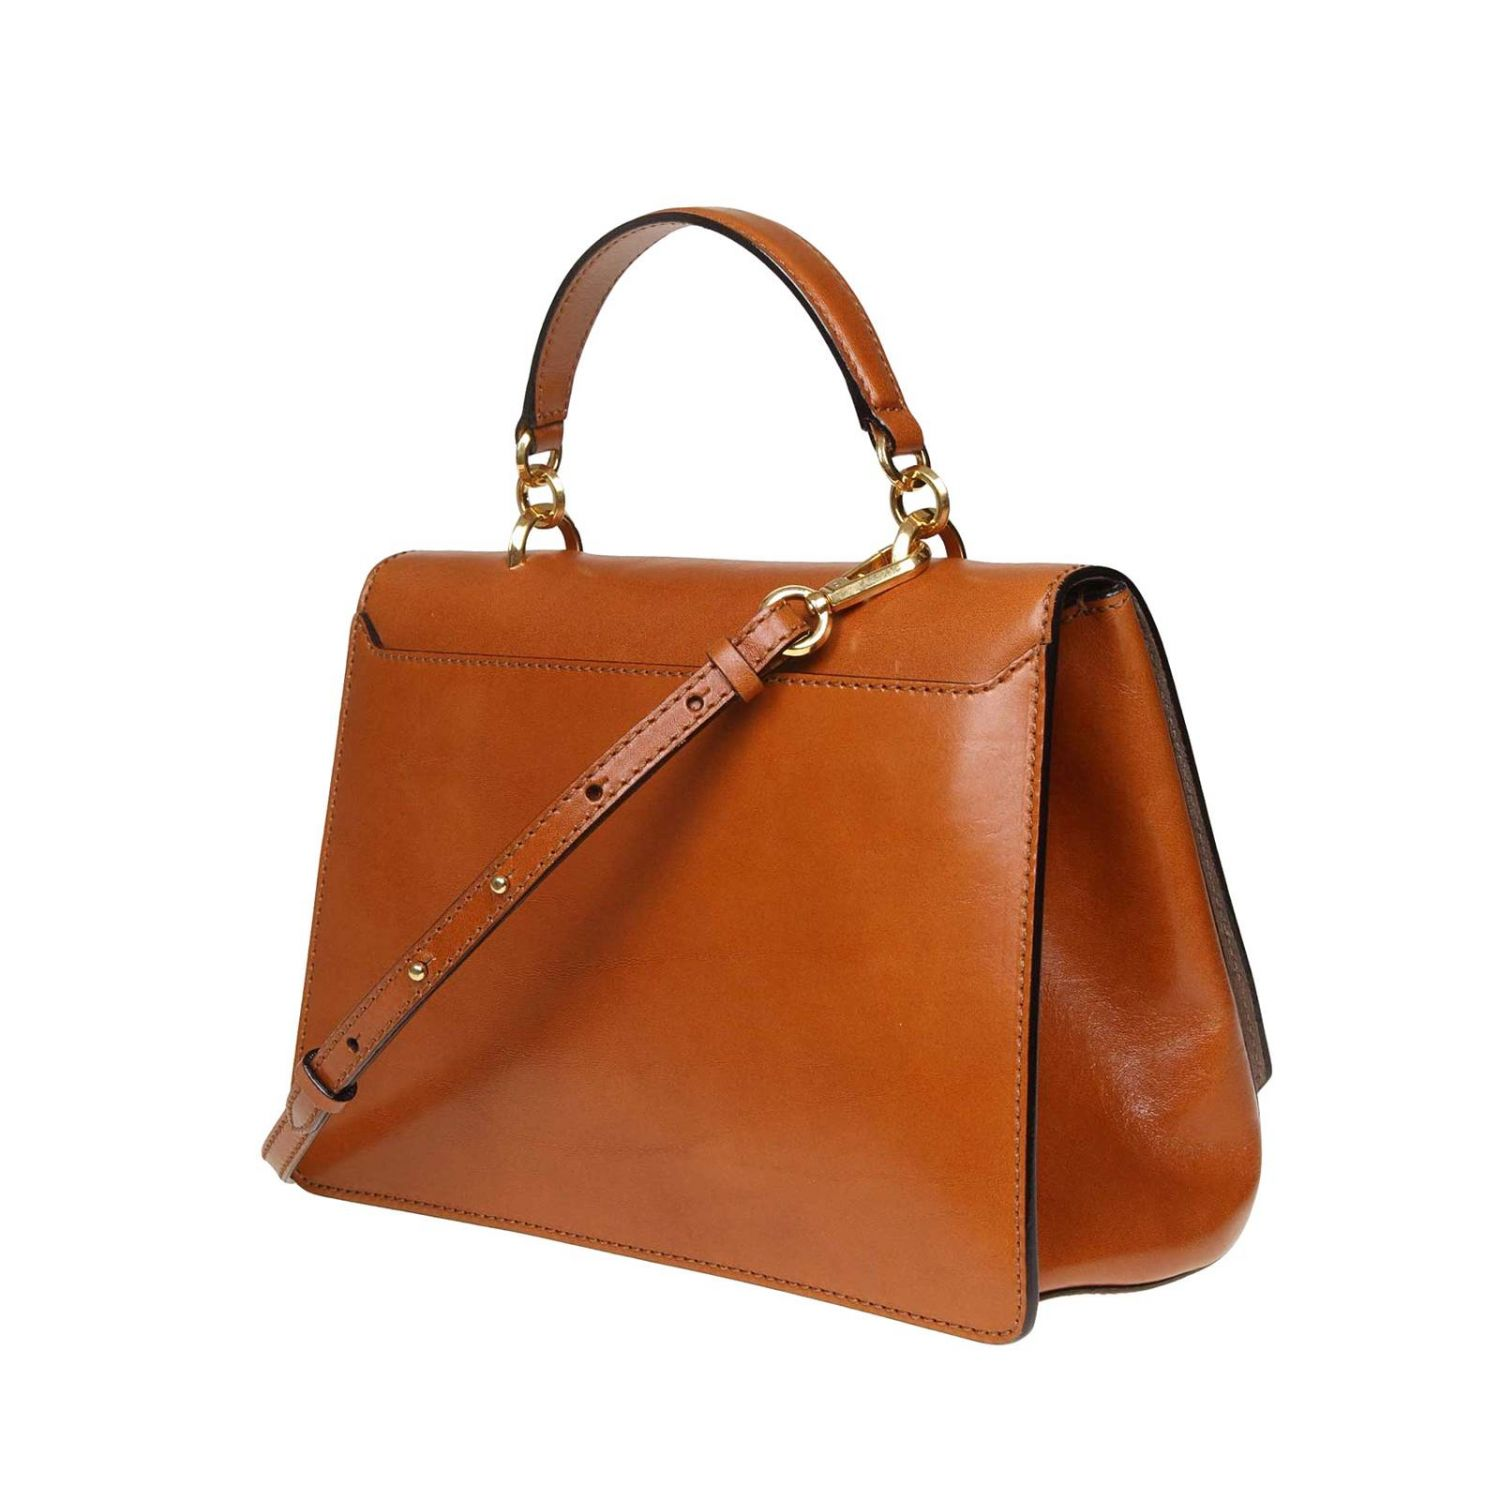 Tote bags Jimmy Choo: Madeline Jimmy Choo handbag in vintage leather with jeweled buckle leather 3